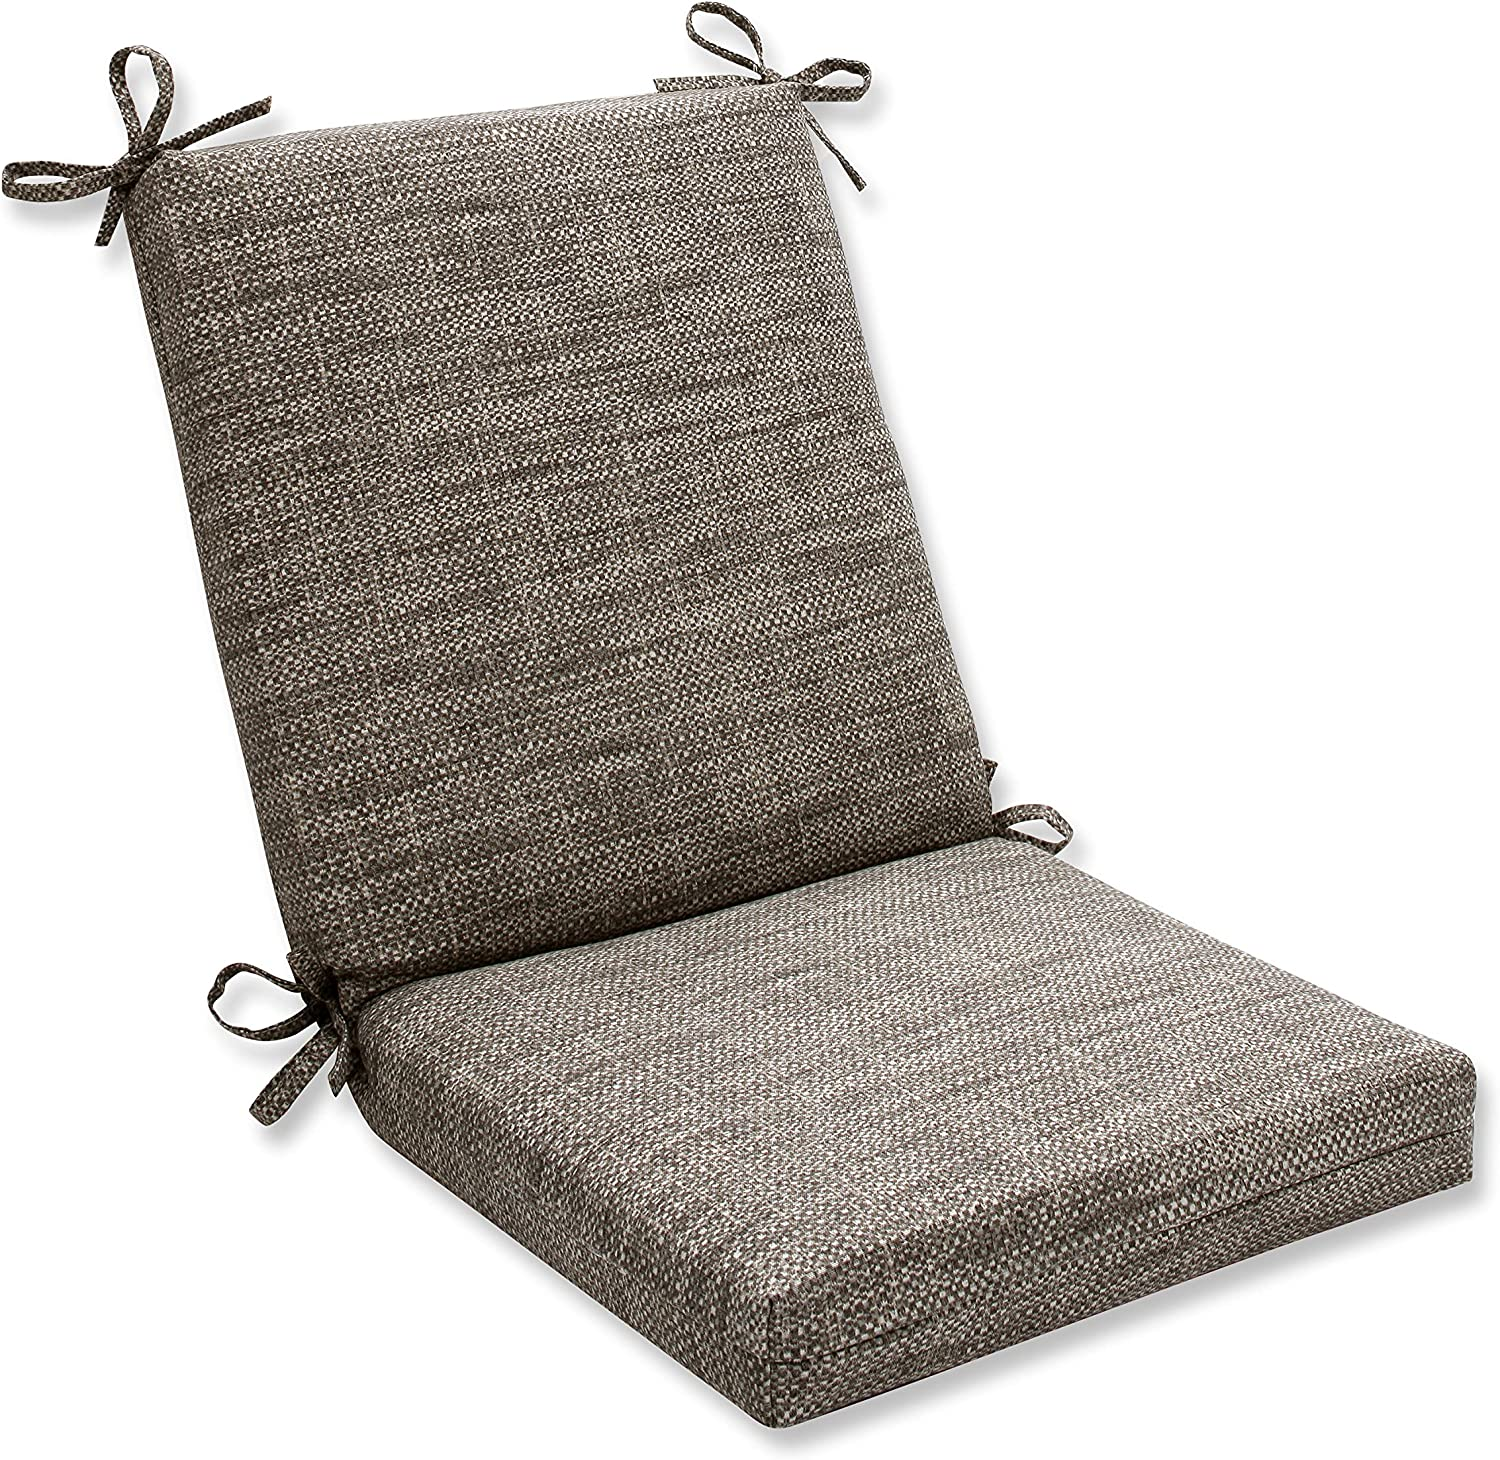 Pillow Perfect Outdoor Indoor Remi Patina Squared Corners Chair Cushion